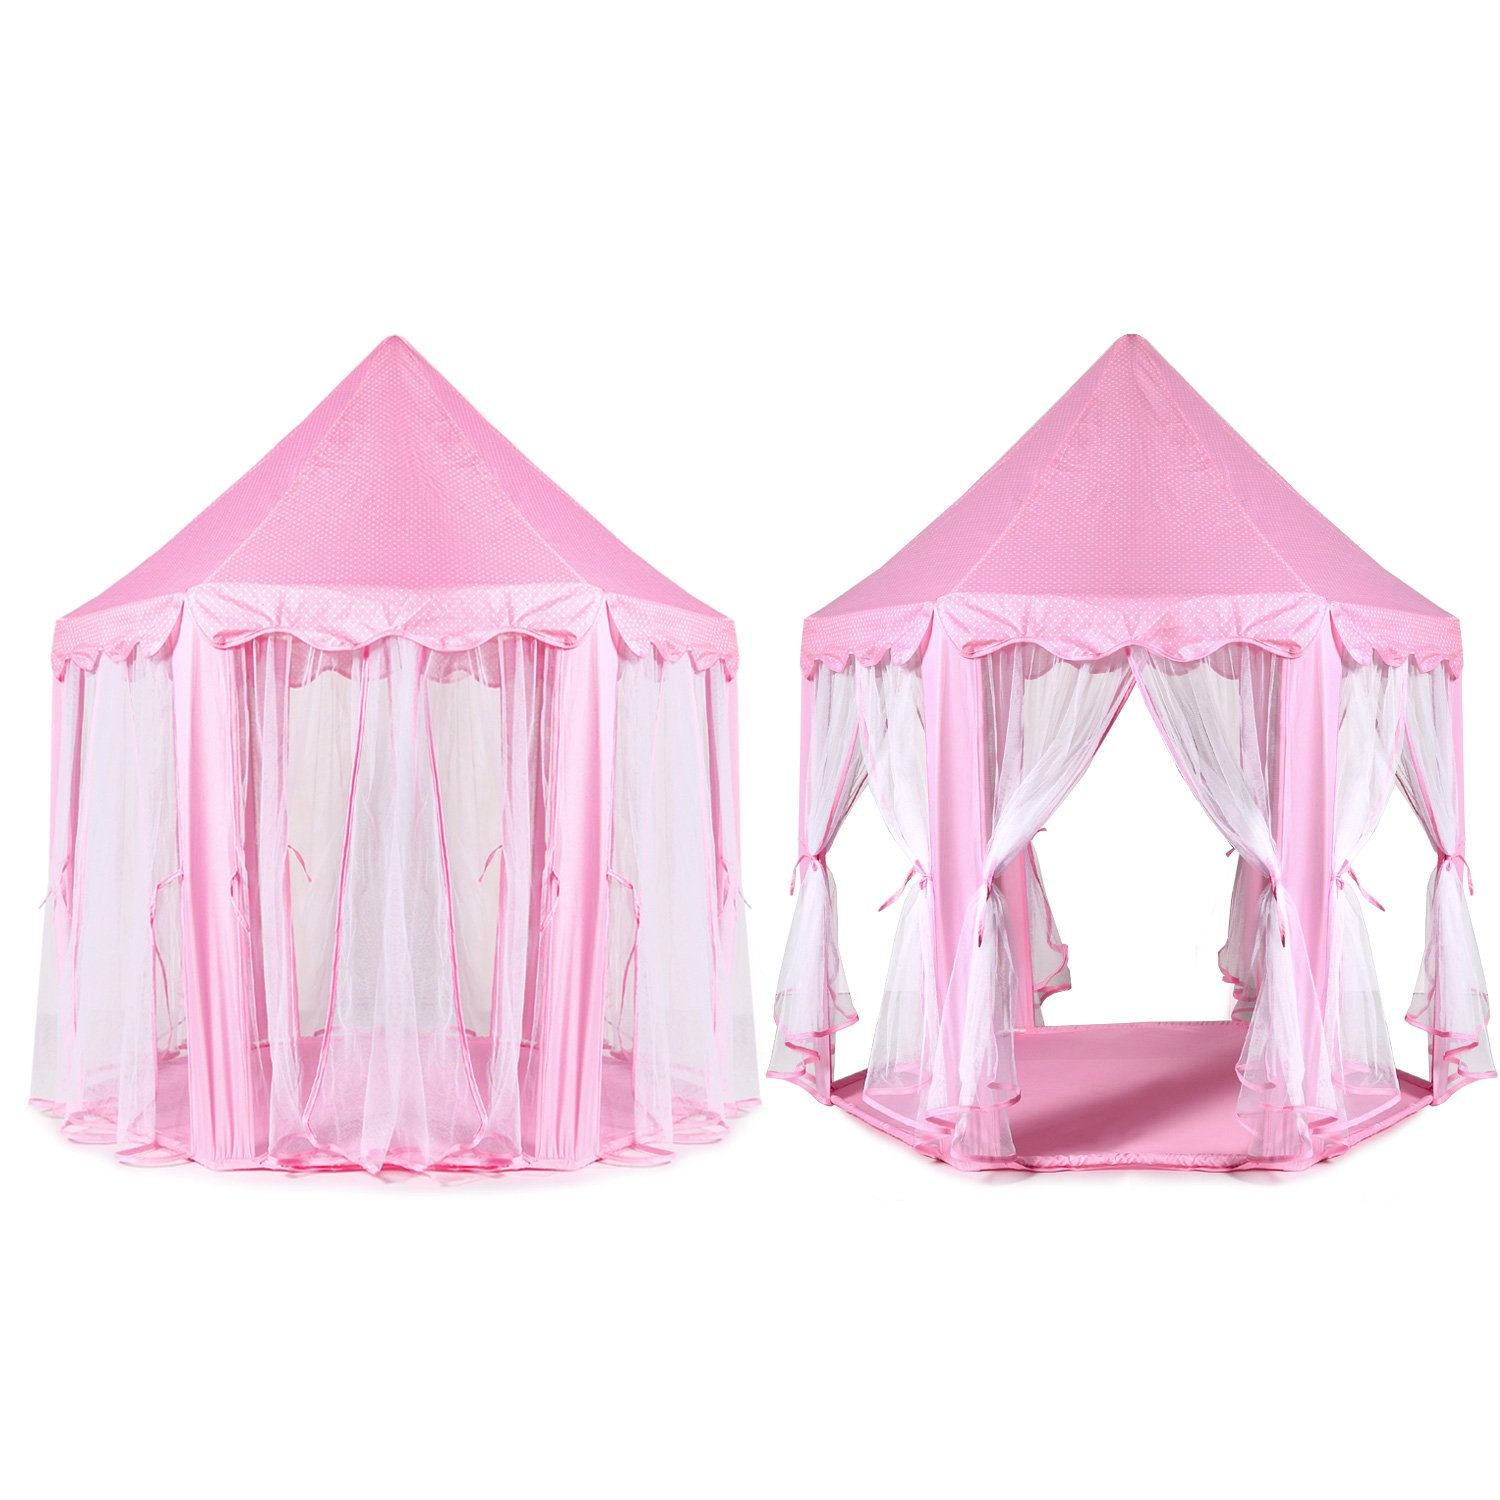 Amazon.com ODOLAND Princess Castle Tent u2013 Large Space Children Play Tent for Kids Indoor u0026 Outdoor Pink Playhouse u2013 Perfect Gift for Kids with Carrying ...  sc 1 st  Amazon.com & Amazon.com: ODOLAND Princess Castle Tent u2013 Large Space Children ...